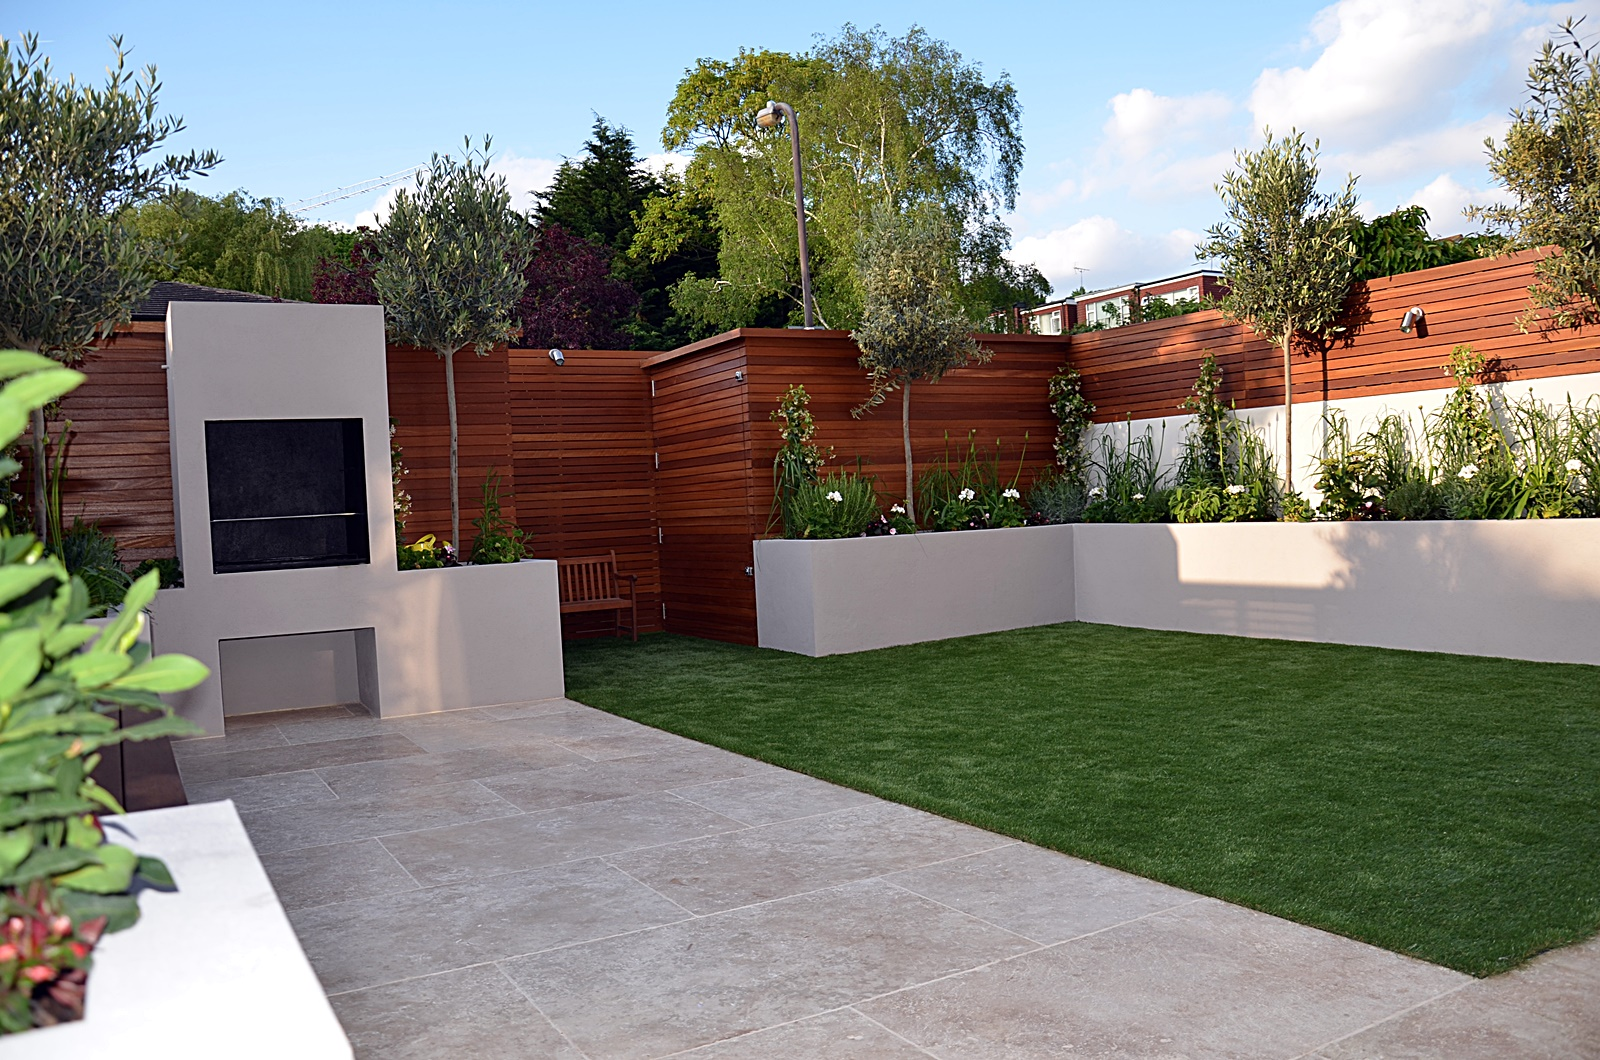 Modern garden design fulham chelsea clapham battersea for Landscape design london